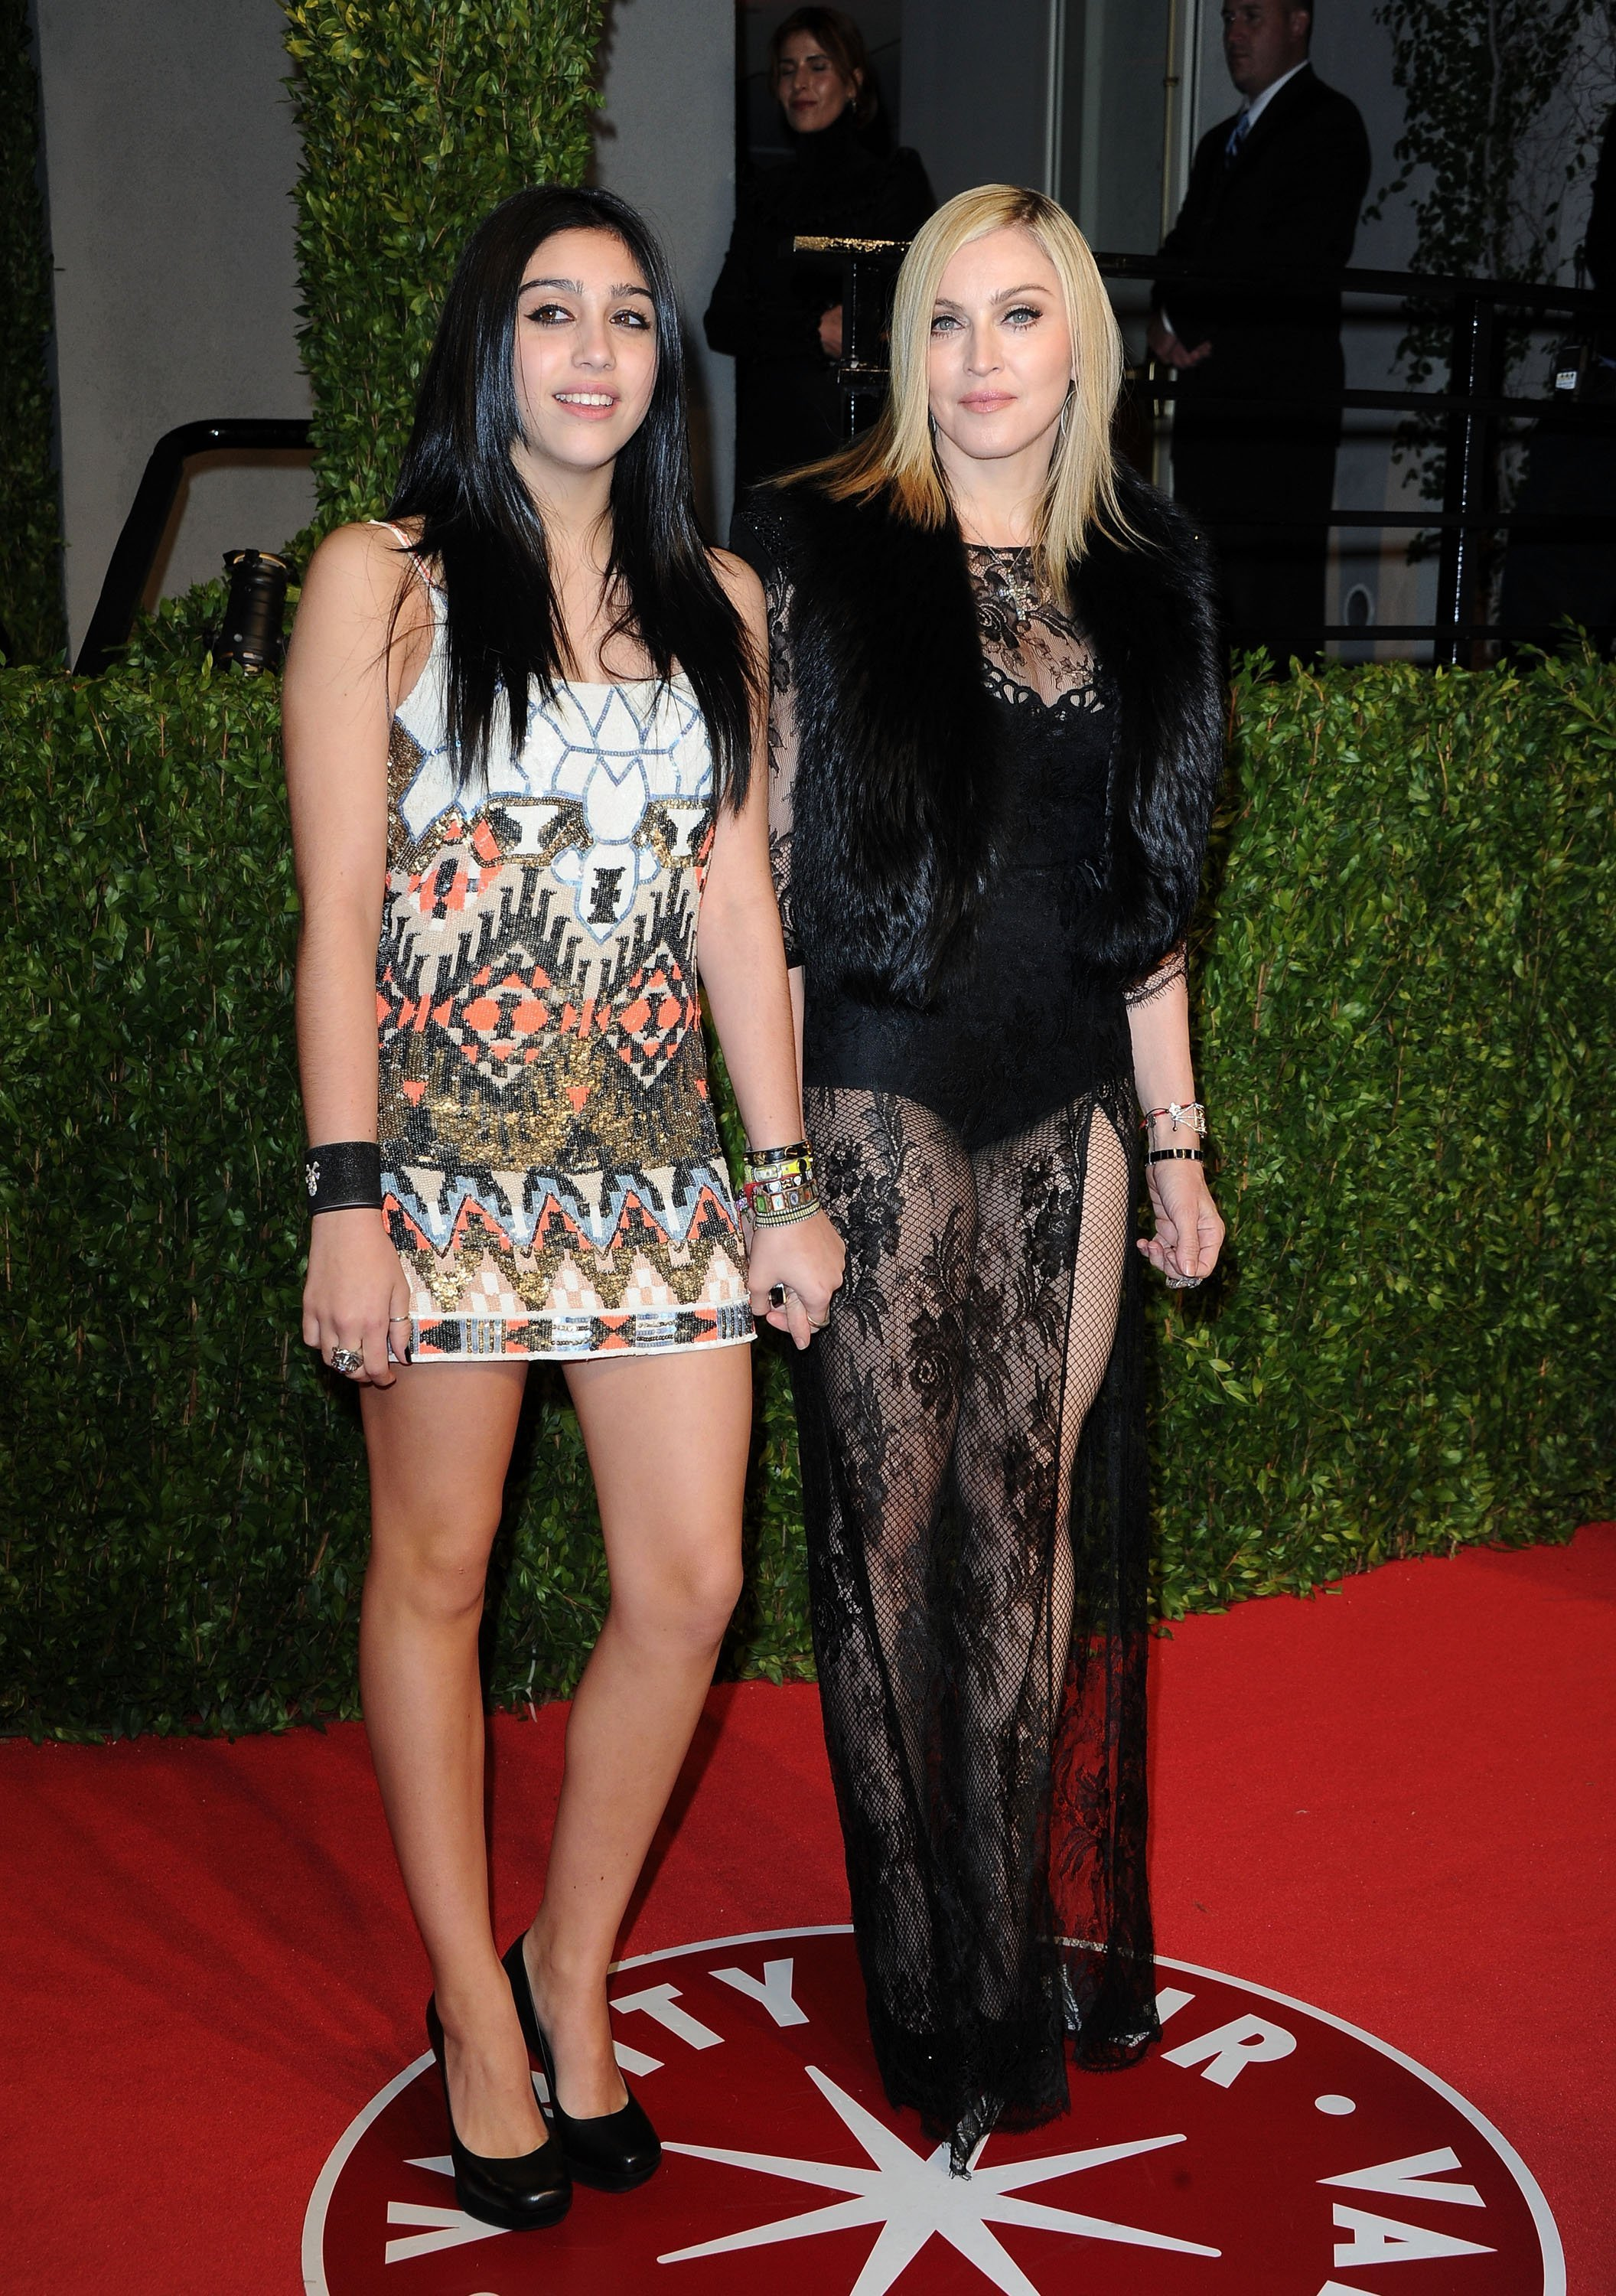 Lourdes Leon (L) and Madonna arrive at the Vanity Fair Oscar party hosted by Graydon Carter held at Sunset Tower on February 27, 2011, in West Hollywood, California. | Photo: Getty Images.